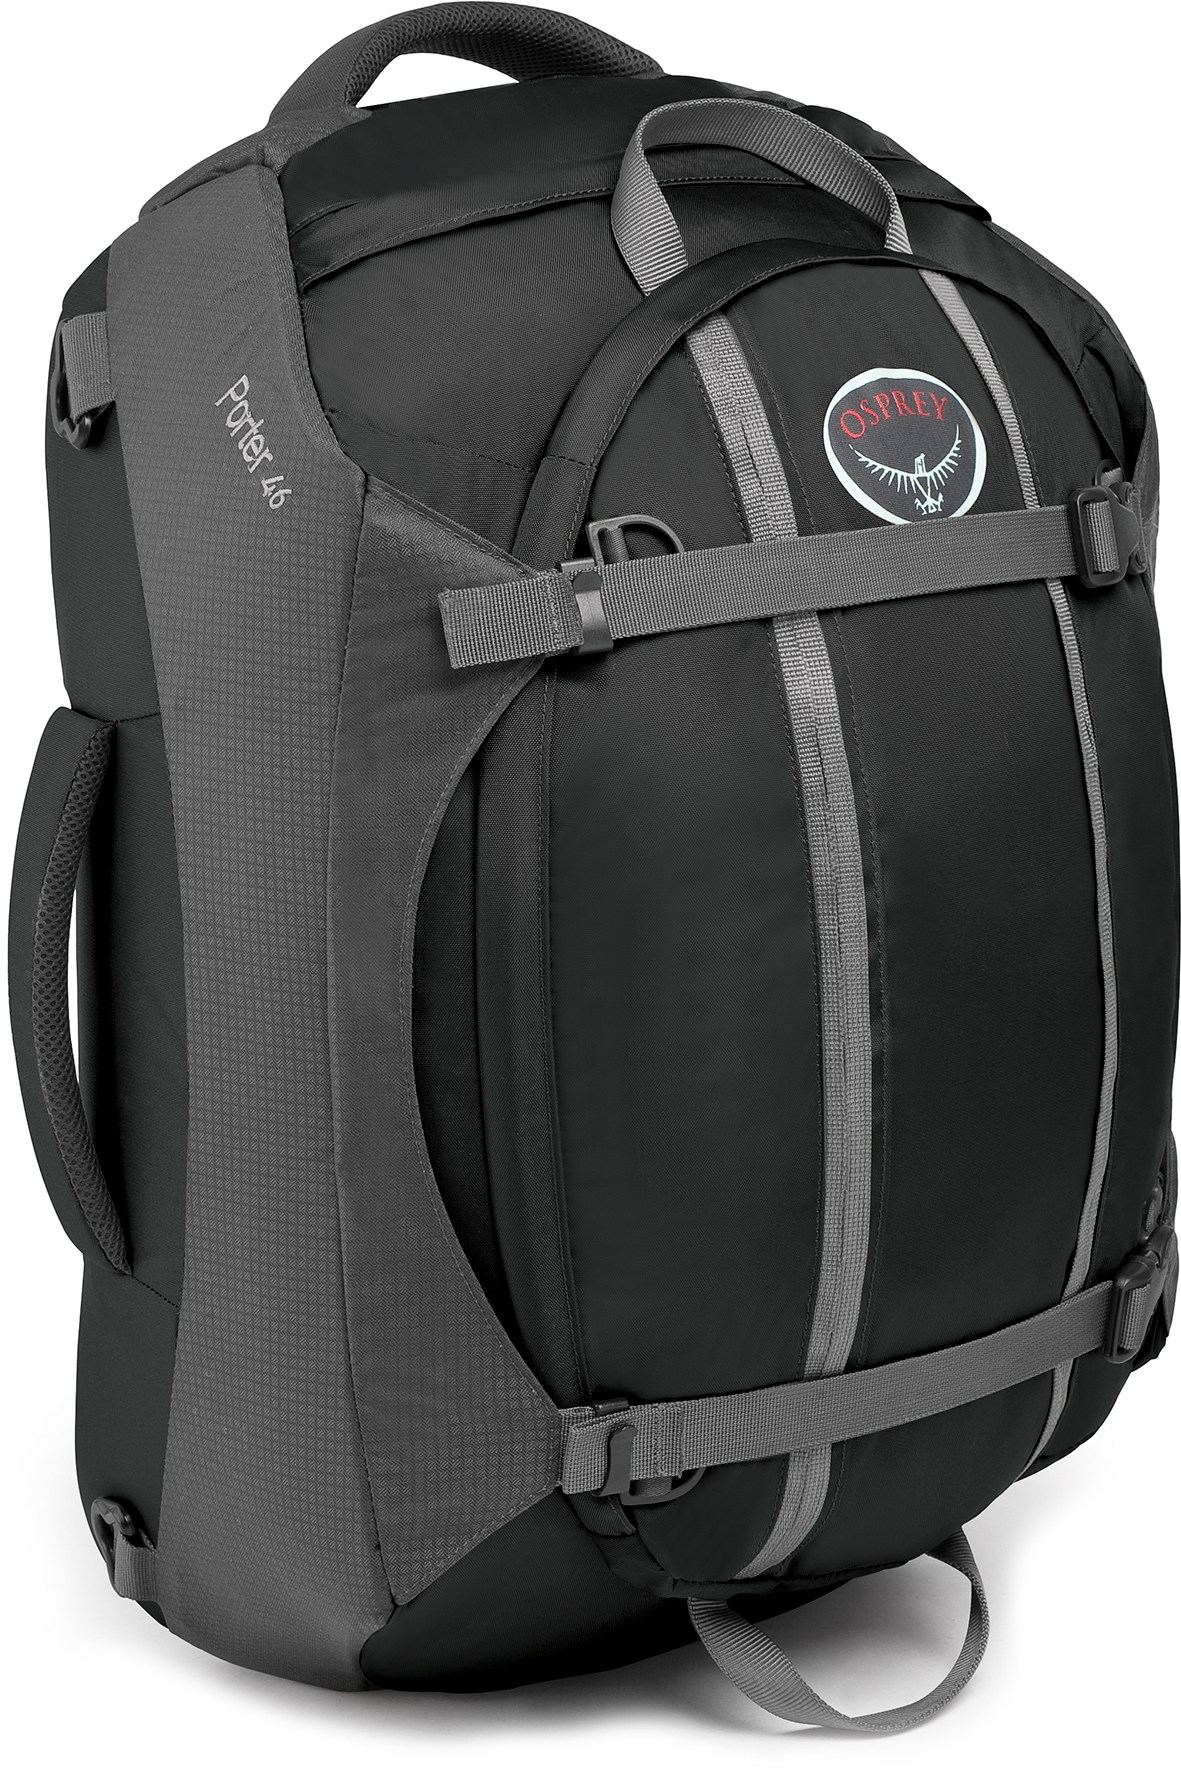 Best Backpacks For Travel LutF13WD